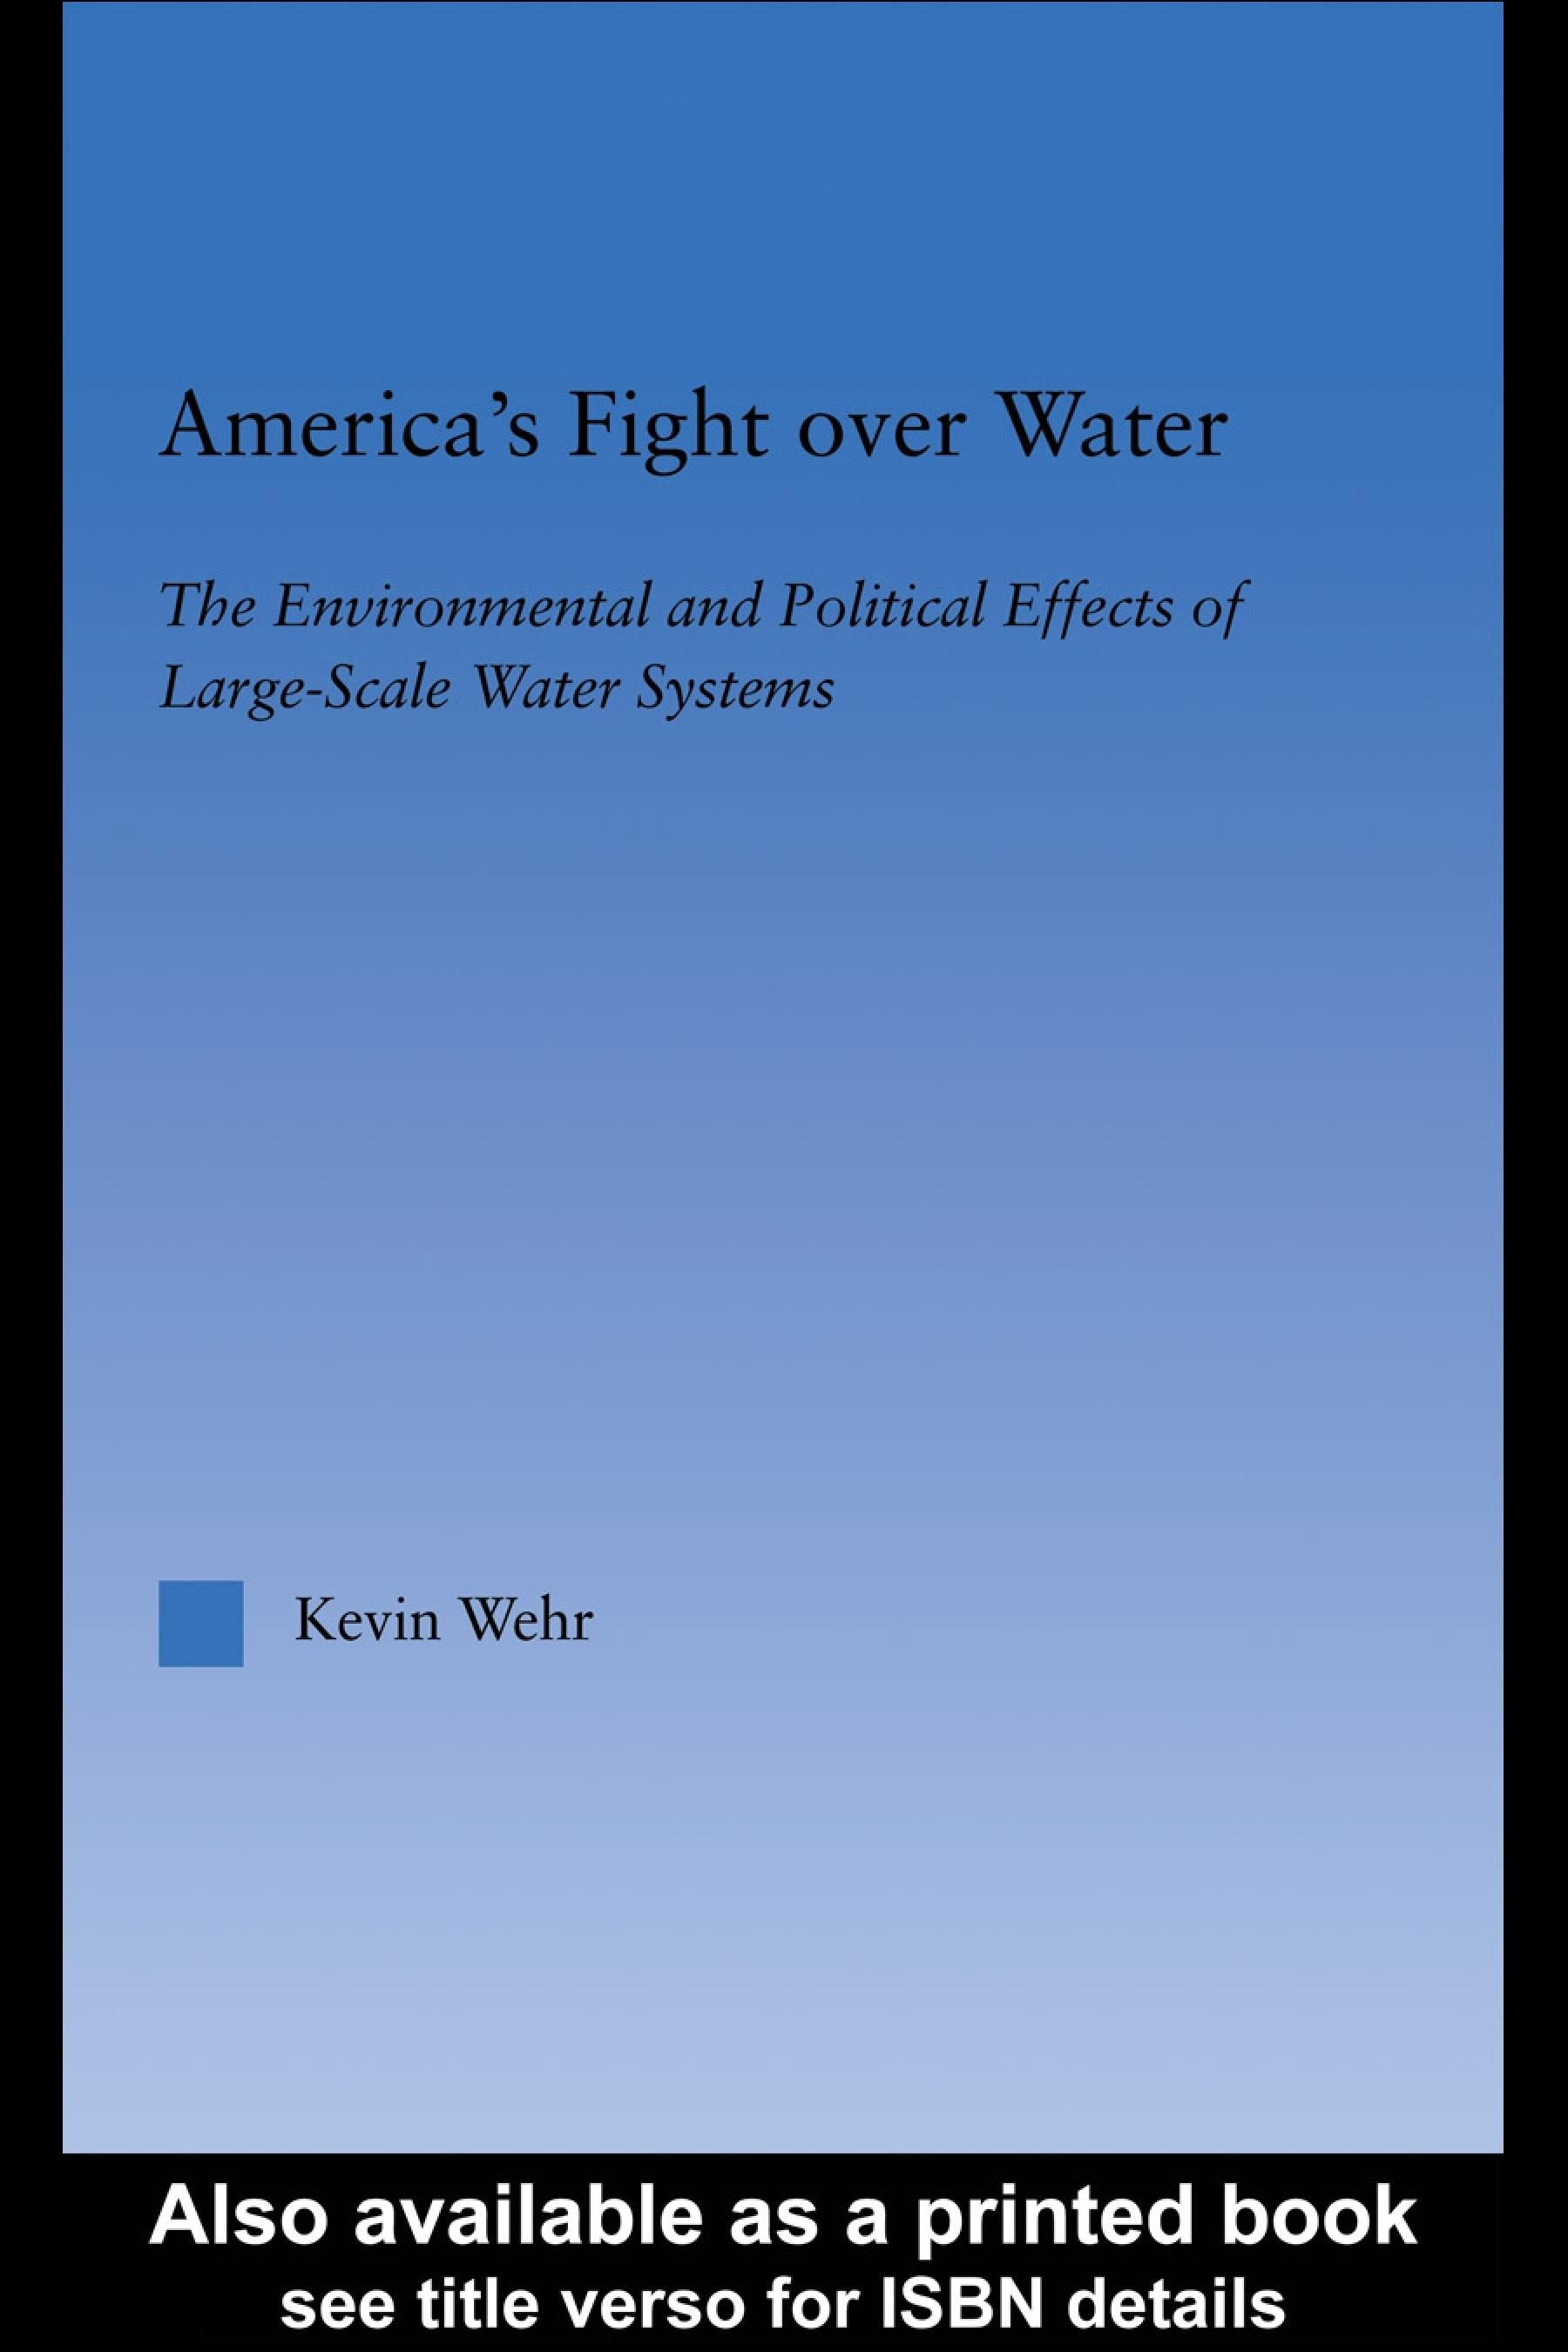 America's Fight over Water: The Environment and Political Effects of Large-Scale Water Systems